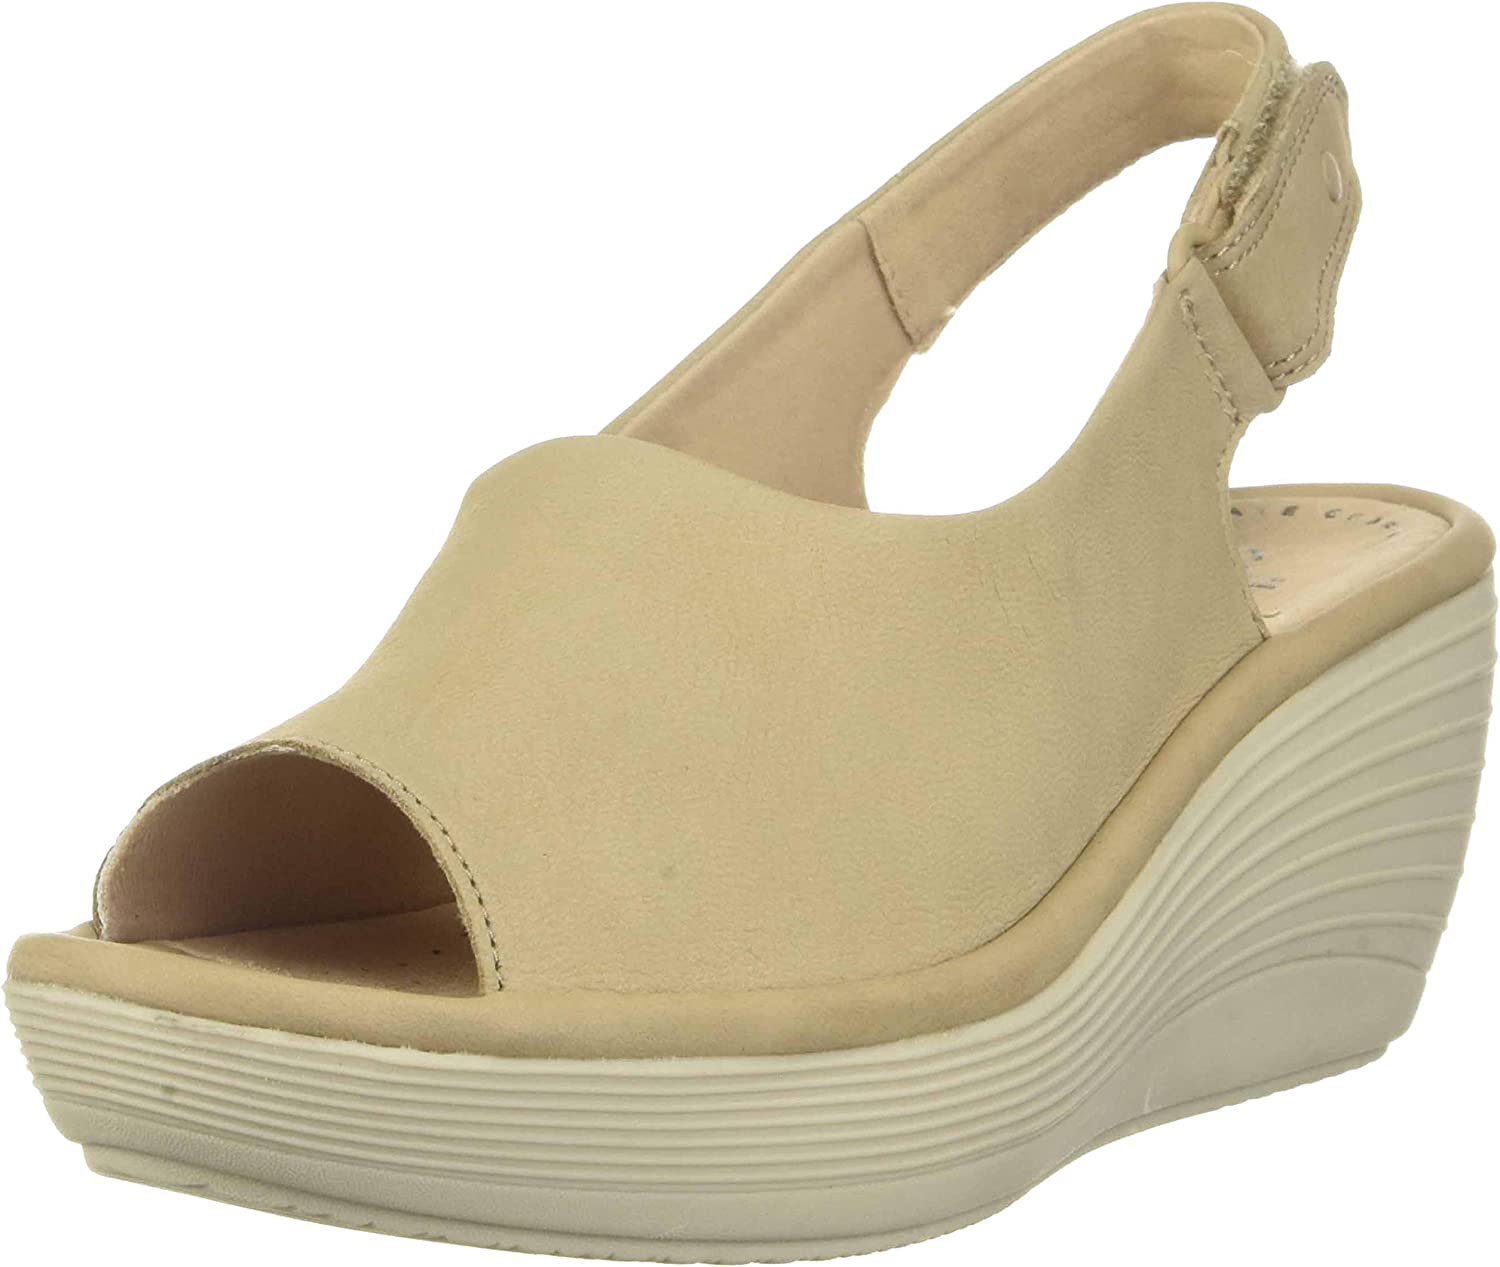 Under blast sales Clarks Women's Reedly Shaina Excellence Sandal Wedge